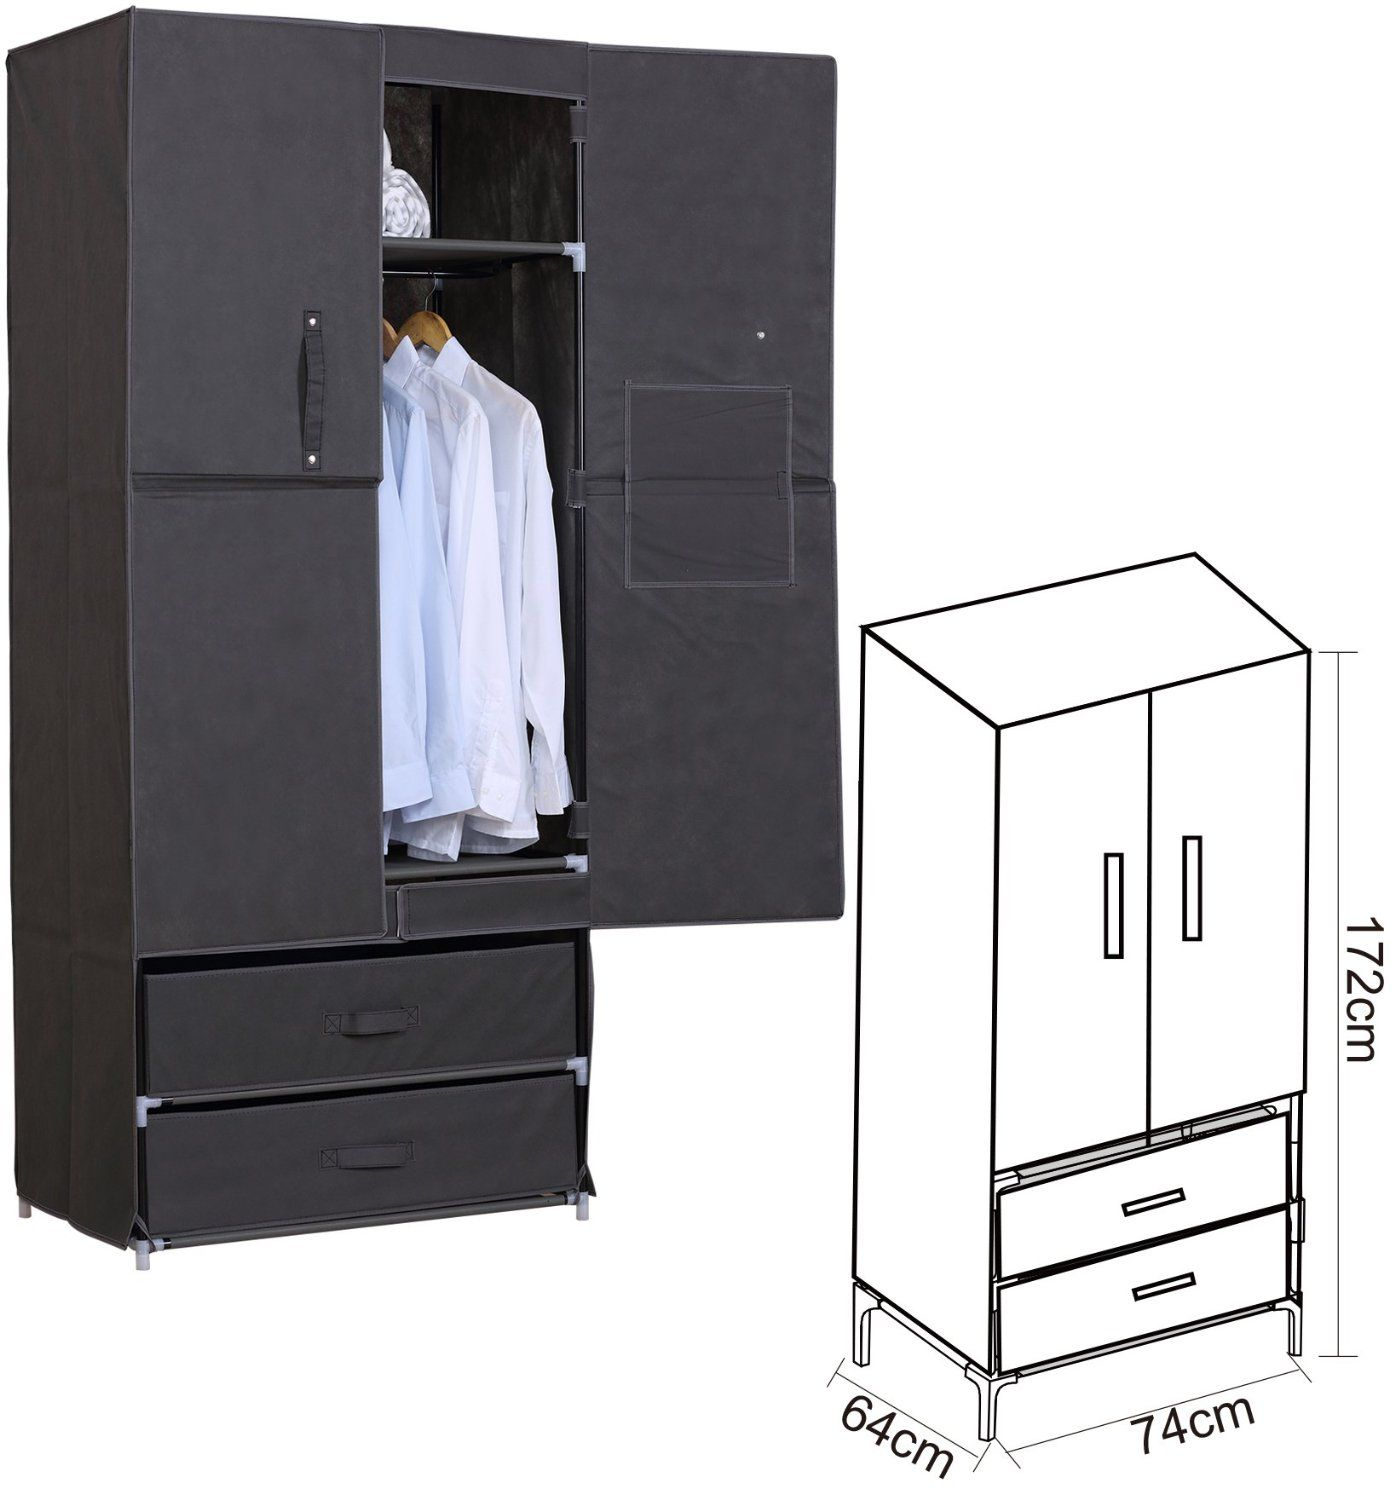 schrank mit stoff full size of schrank stoff schrank kaufen billigstoff schrank partien und. Black Bedroom Furniture Sets. Home Design Ideas